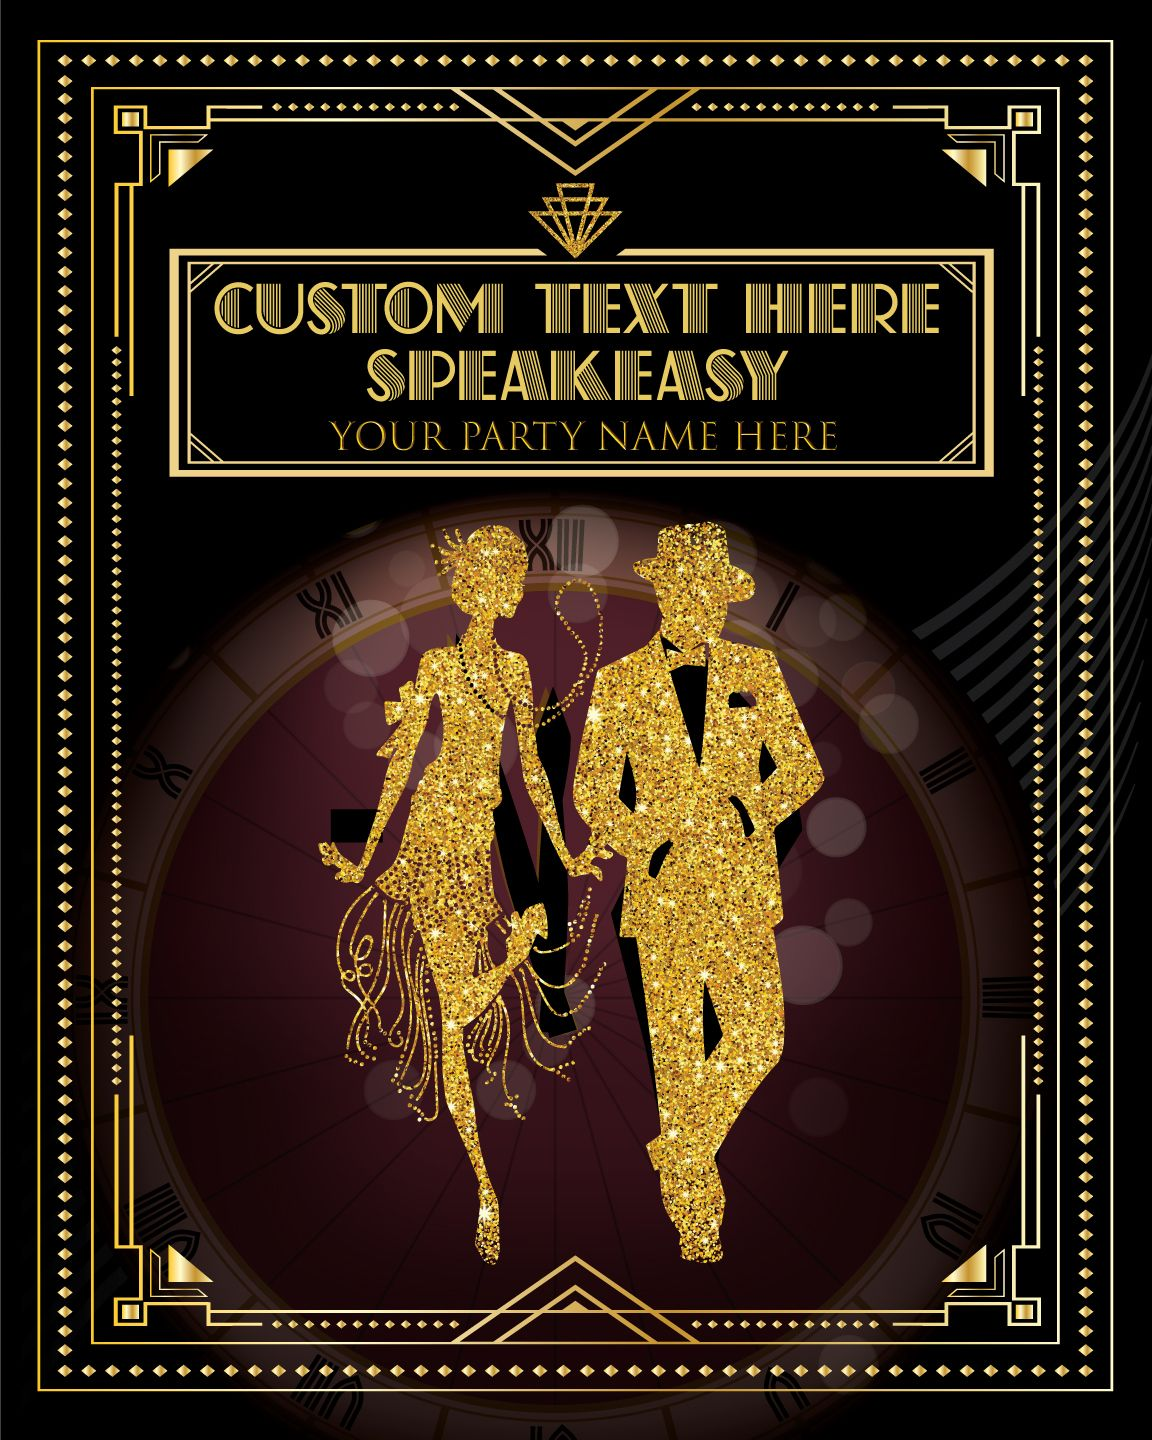 A Personalized Roaring 20s Themed Poster For Your Special